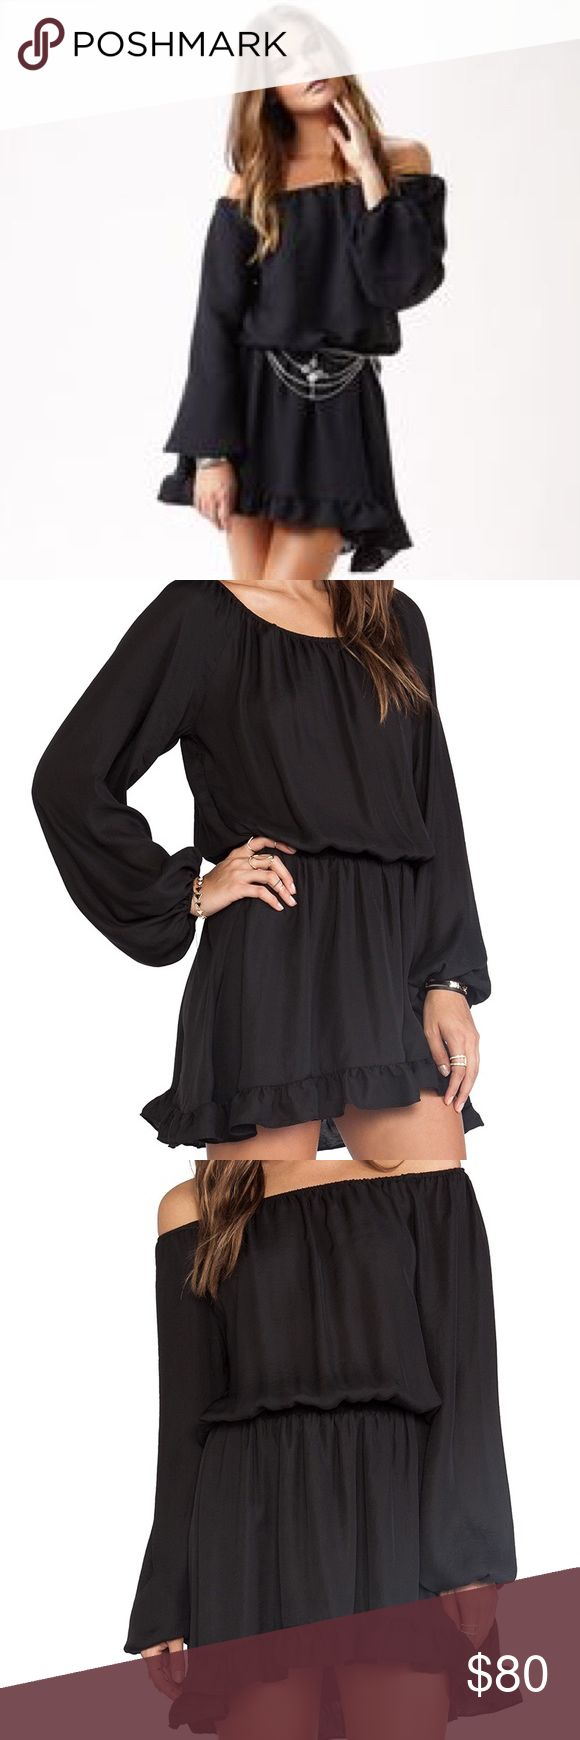 Show Me Your Mumu Black Lee Lee Ruffle Dress Flawless condition. Lee Lee Ruffle Dress is a work hard play hard kinda gal. Her girly glam adds instant charm to your wardrobe. Wear her over the shoulders or pull her elastic scrunch band across your arms to show a little more skin. Show Me Your MuMu Dresses Mini